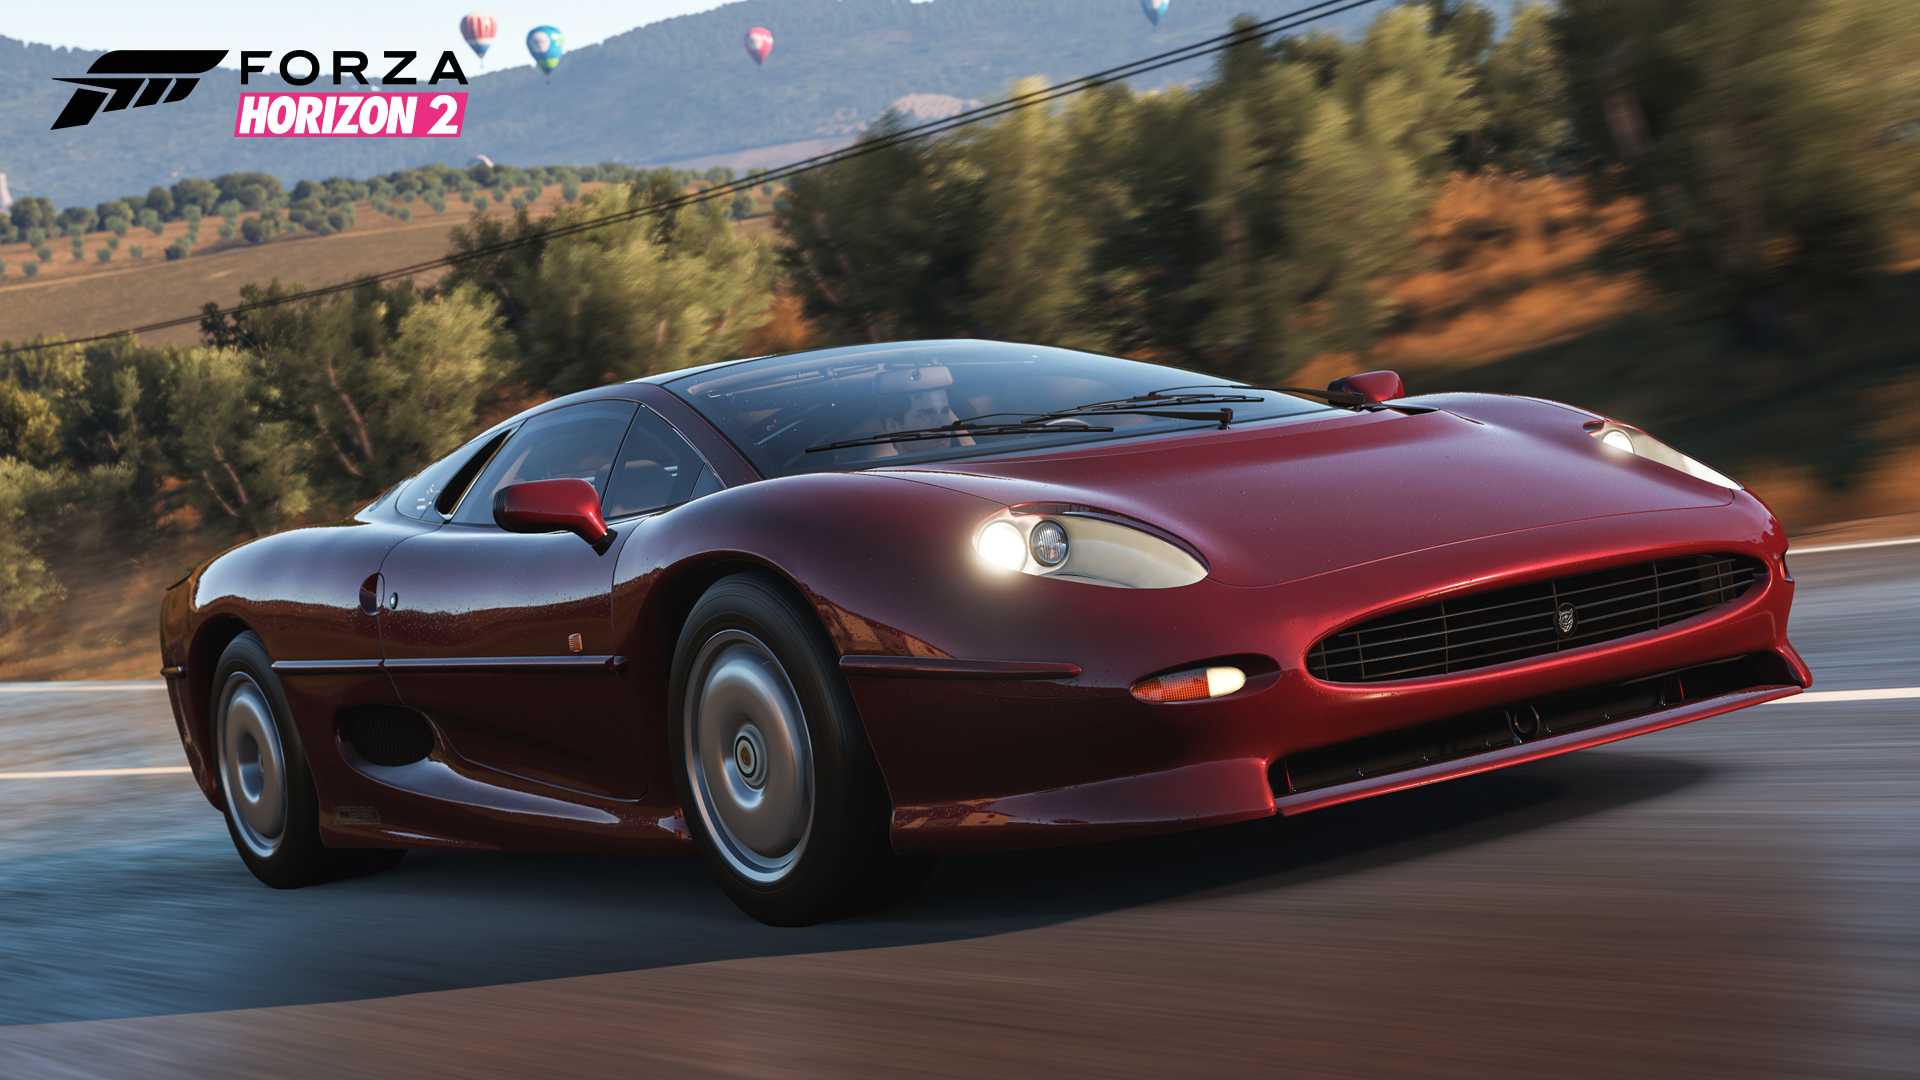 You Can Now Download The Top Gear Car Pack For Forza Horizon